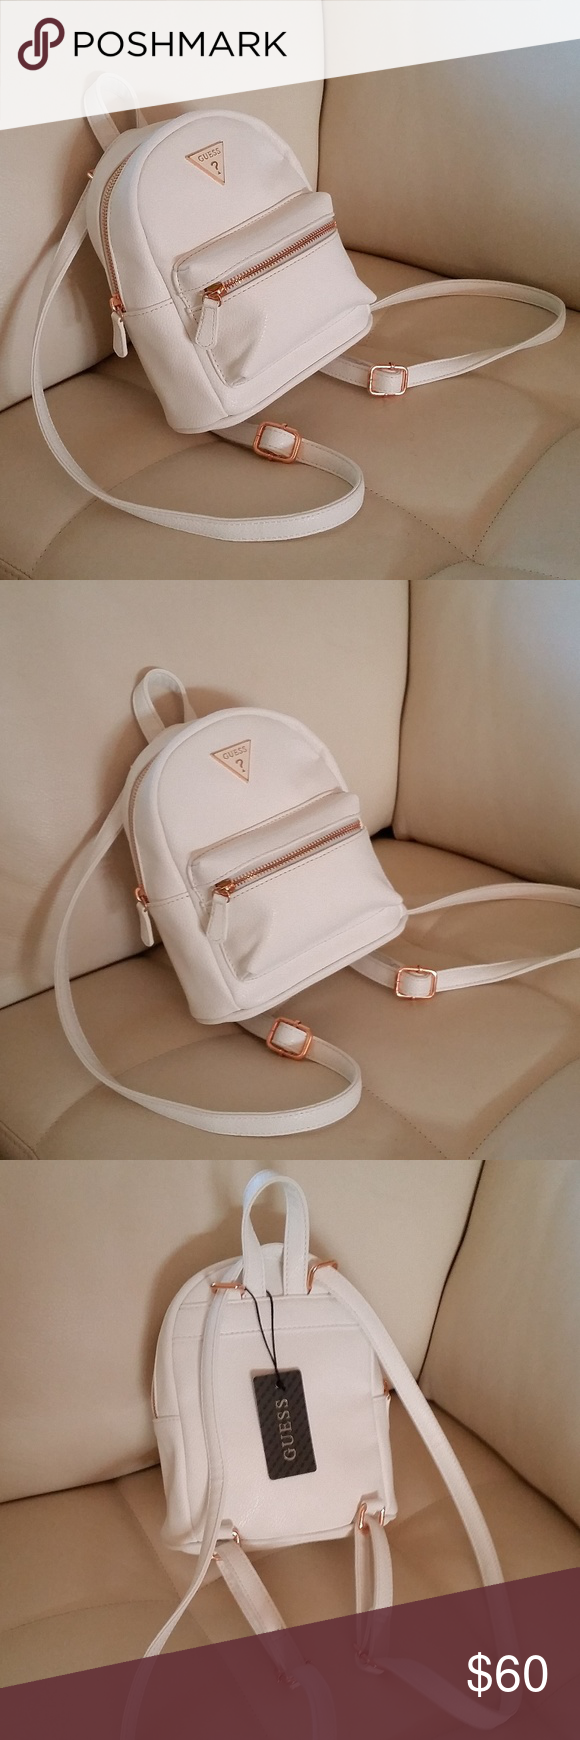 8e5796919f3 Guess White Mini Backpack - CEAGESP